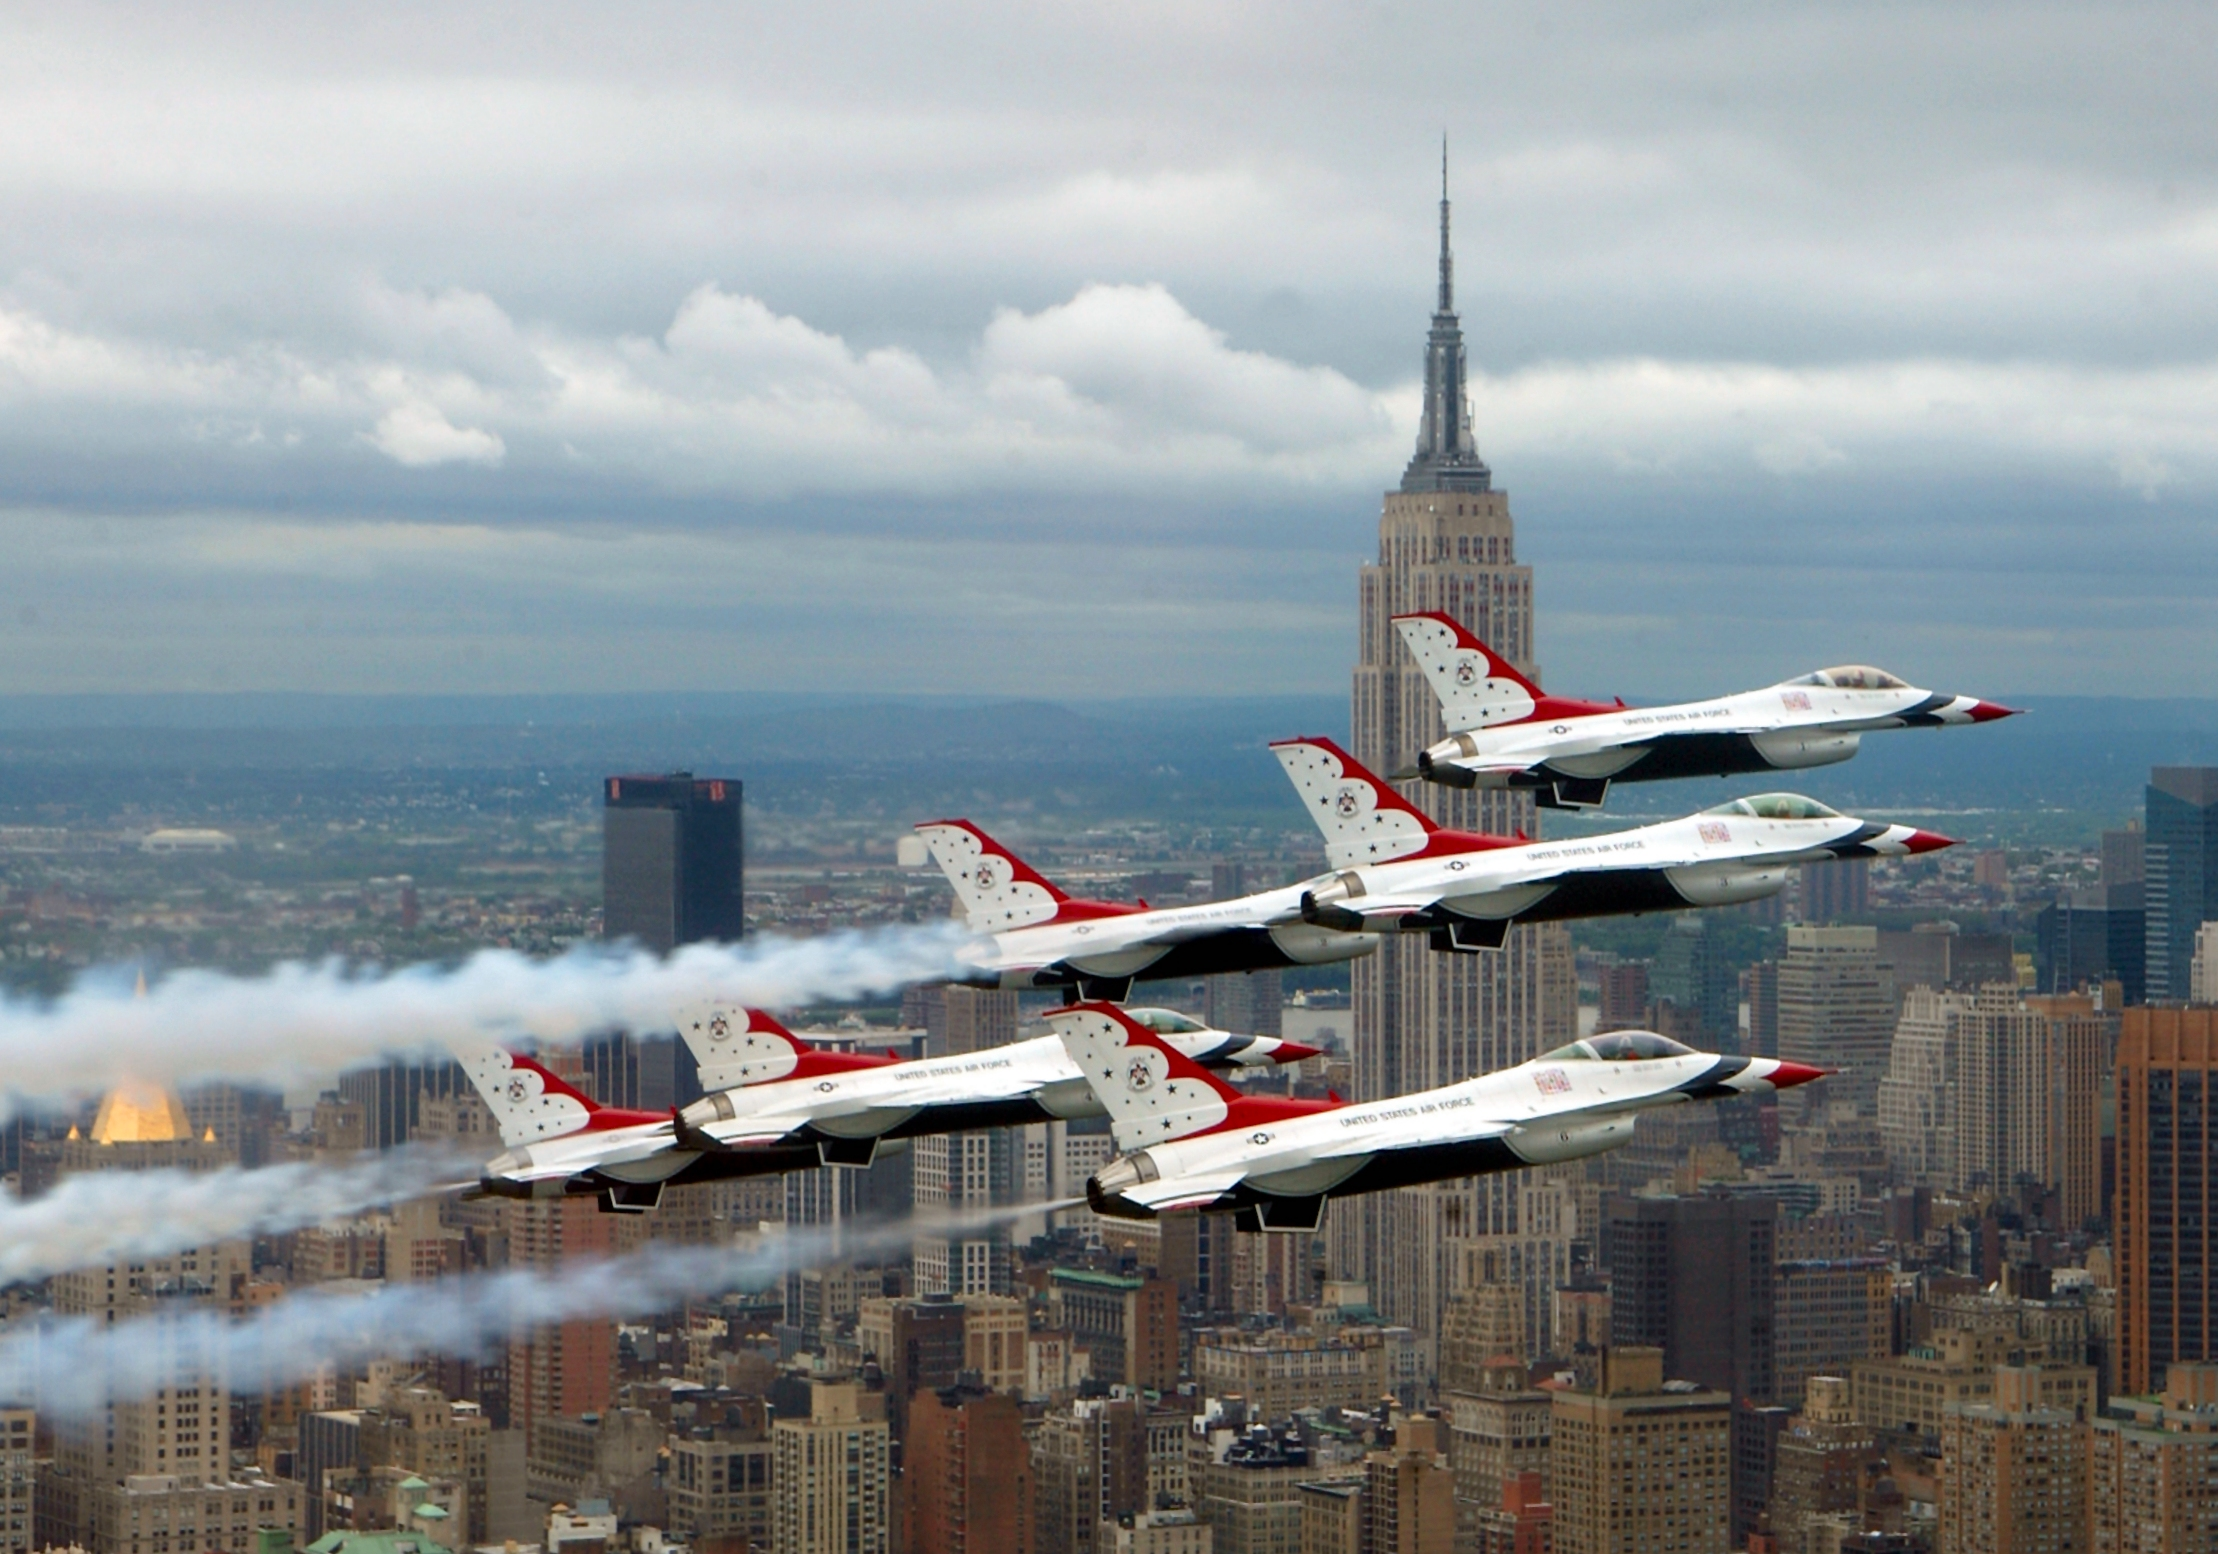 http://upload.wikimedia.org/wikipedia/commons/b/b8/F-16_Fighting_Falcons_above_New_York_City.jpg